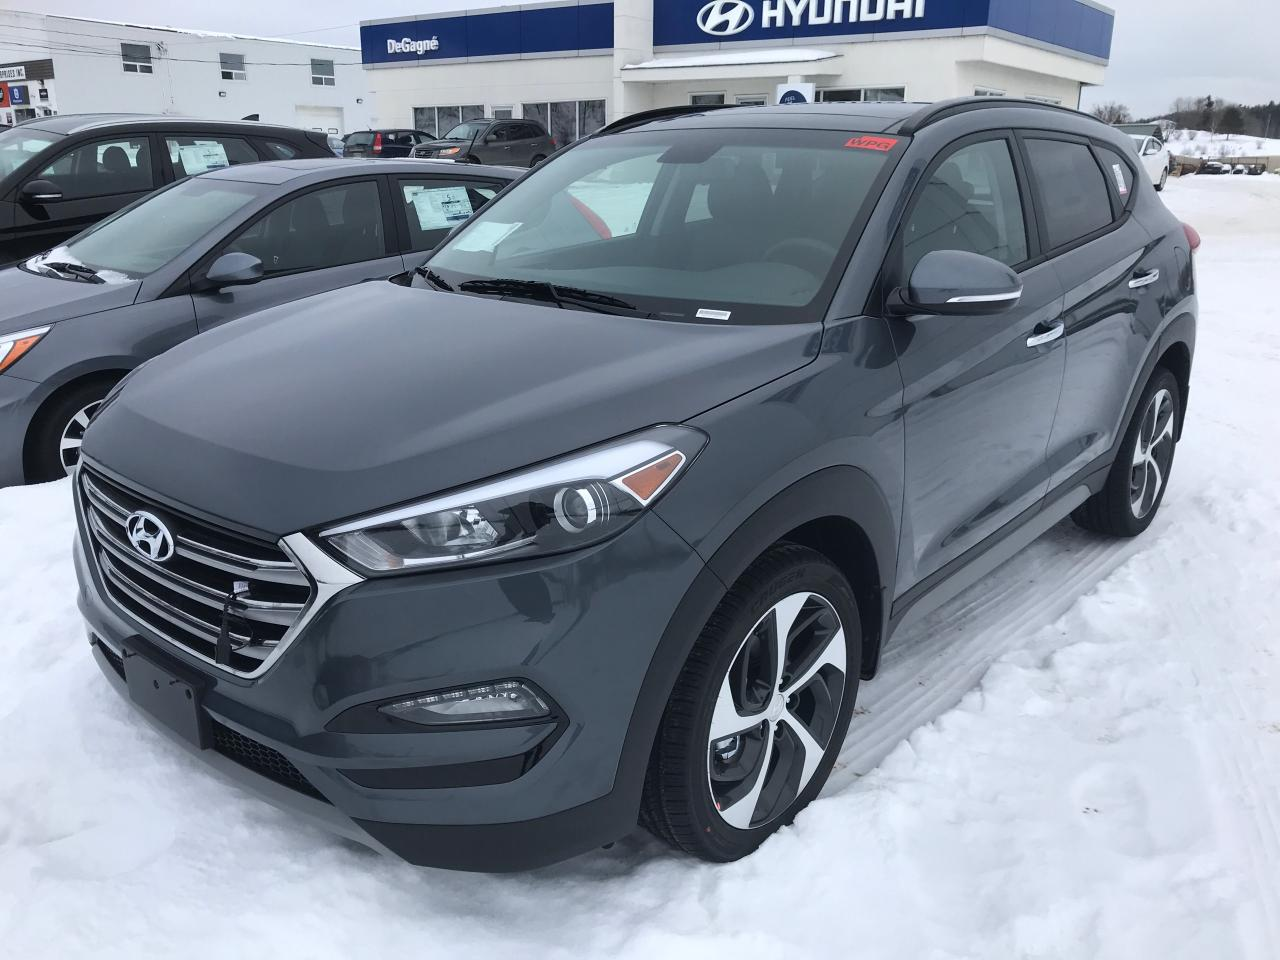 moose inventory for luxury new jaw in hyundai saskatchewan tucson sale